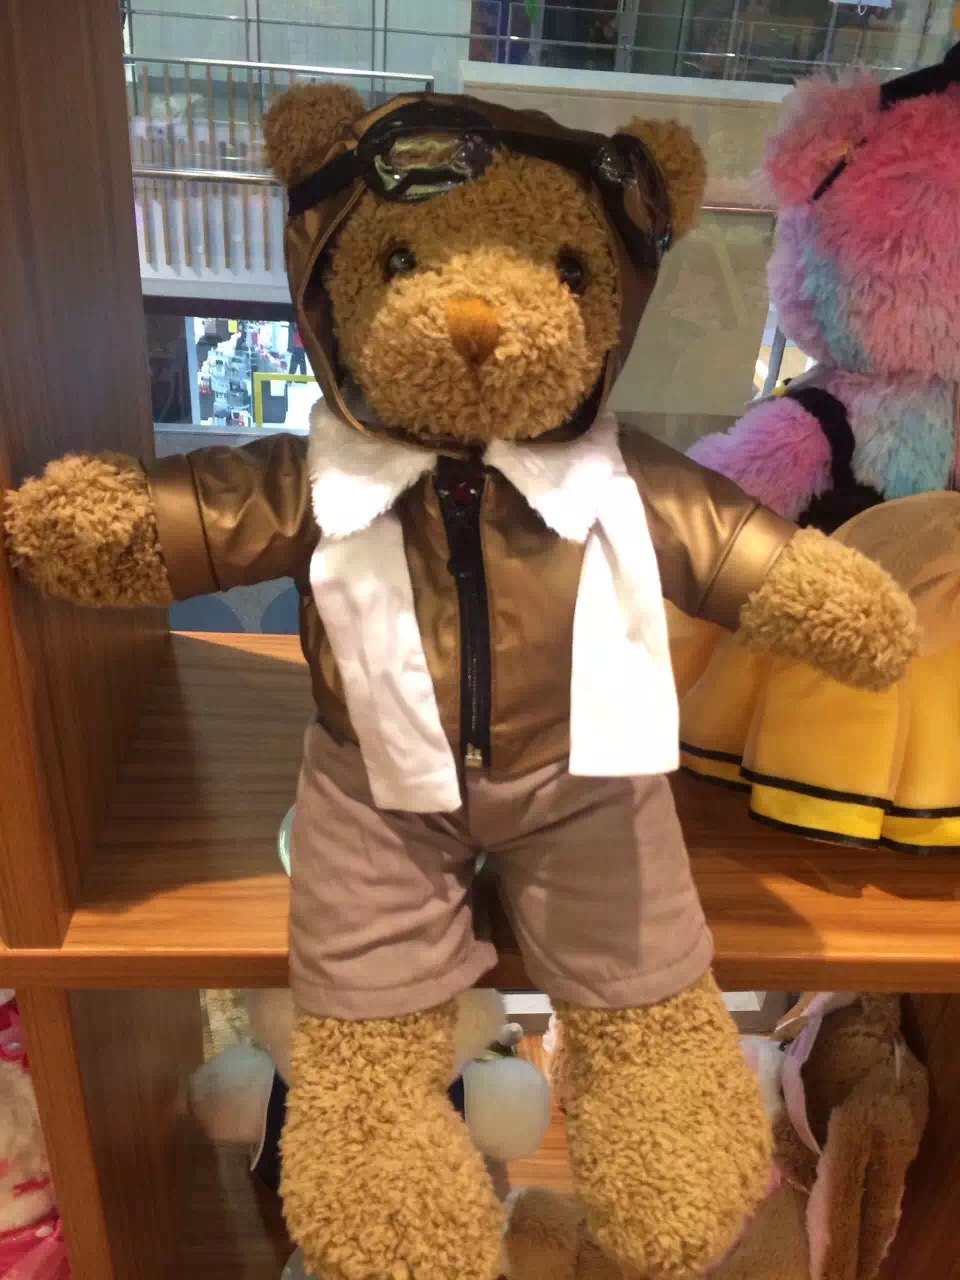 Bear Dressed Up